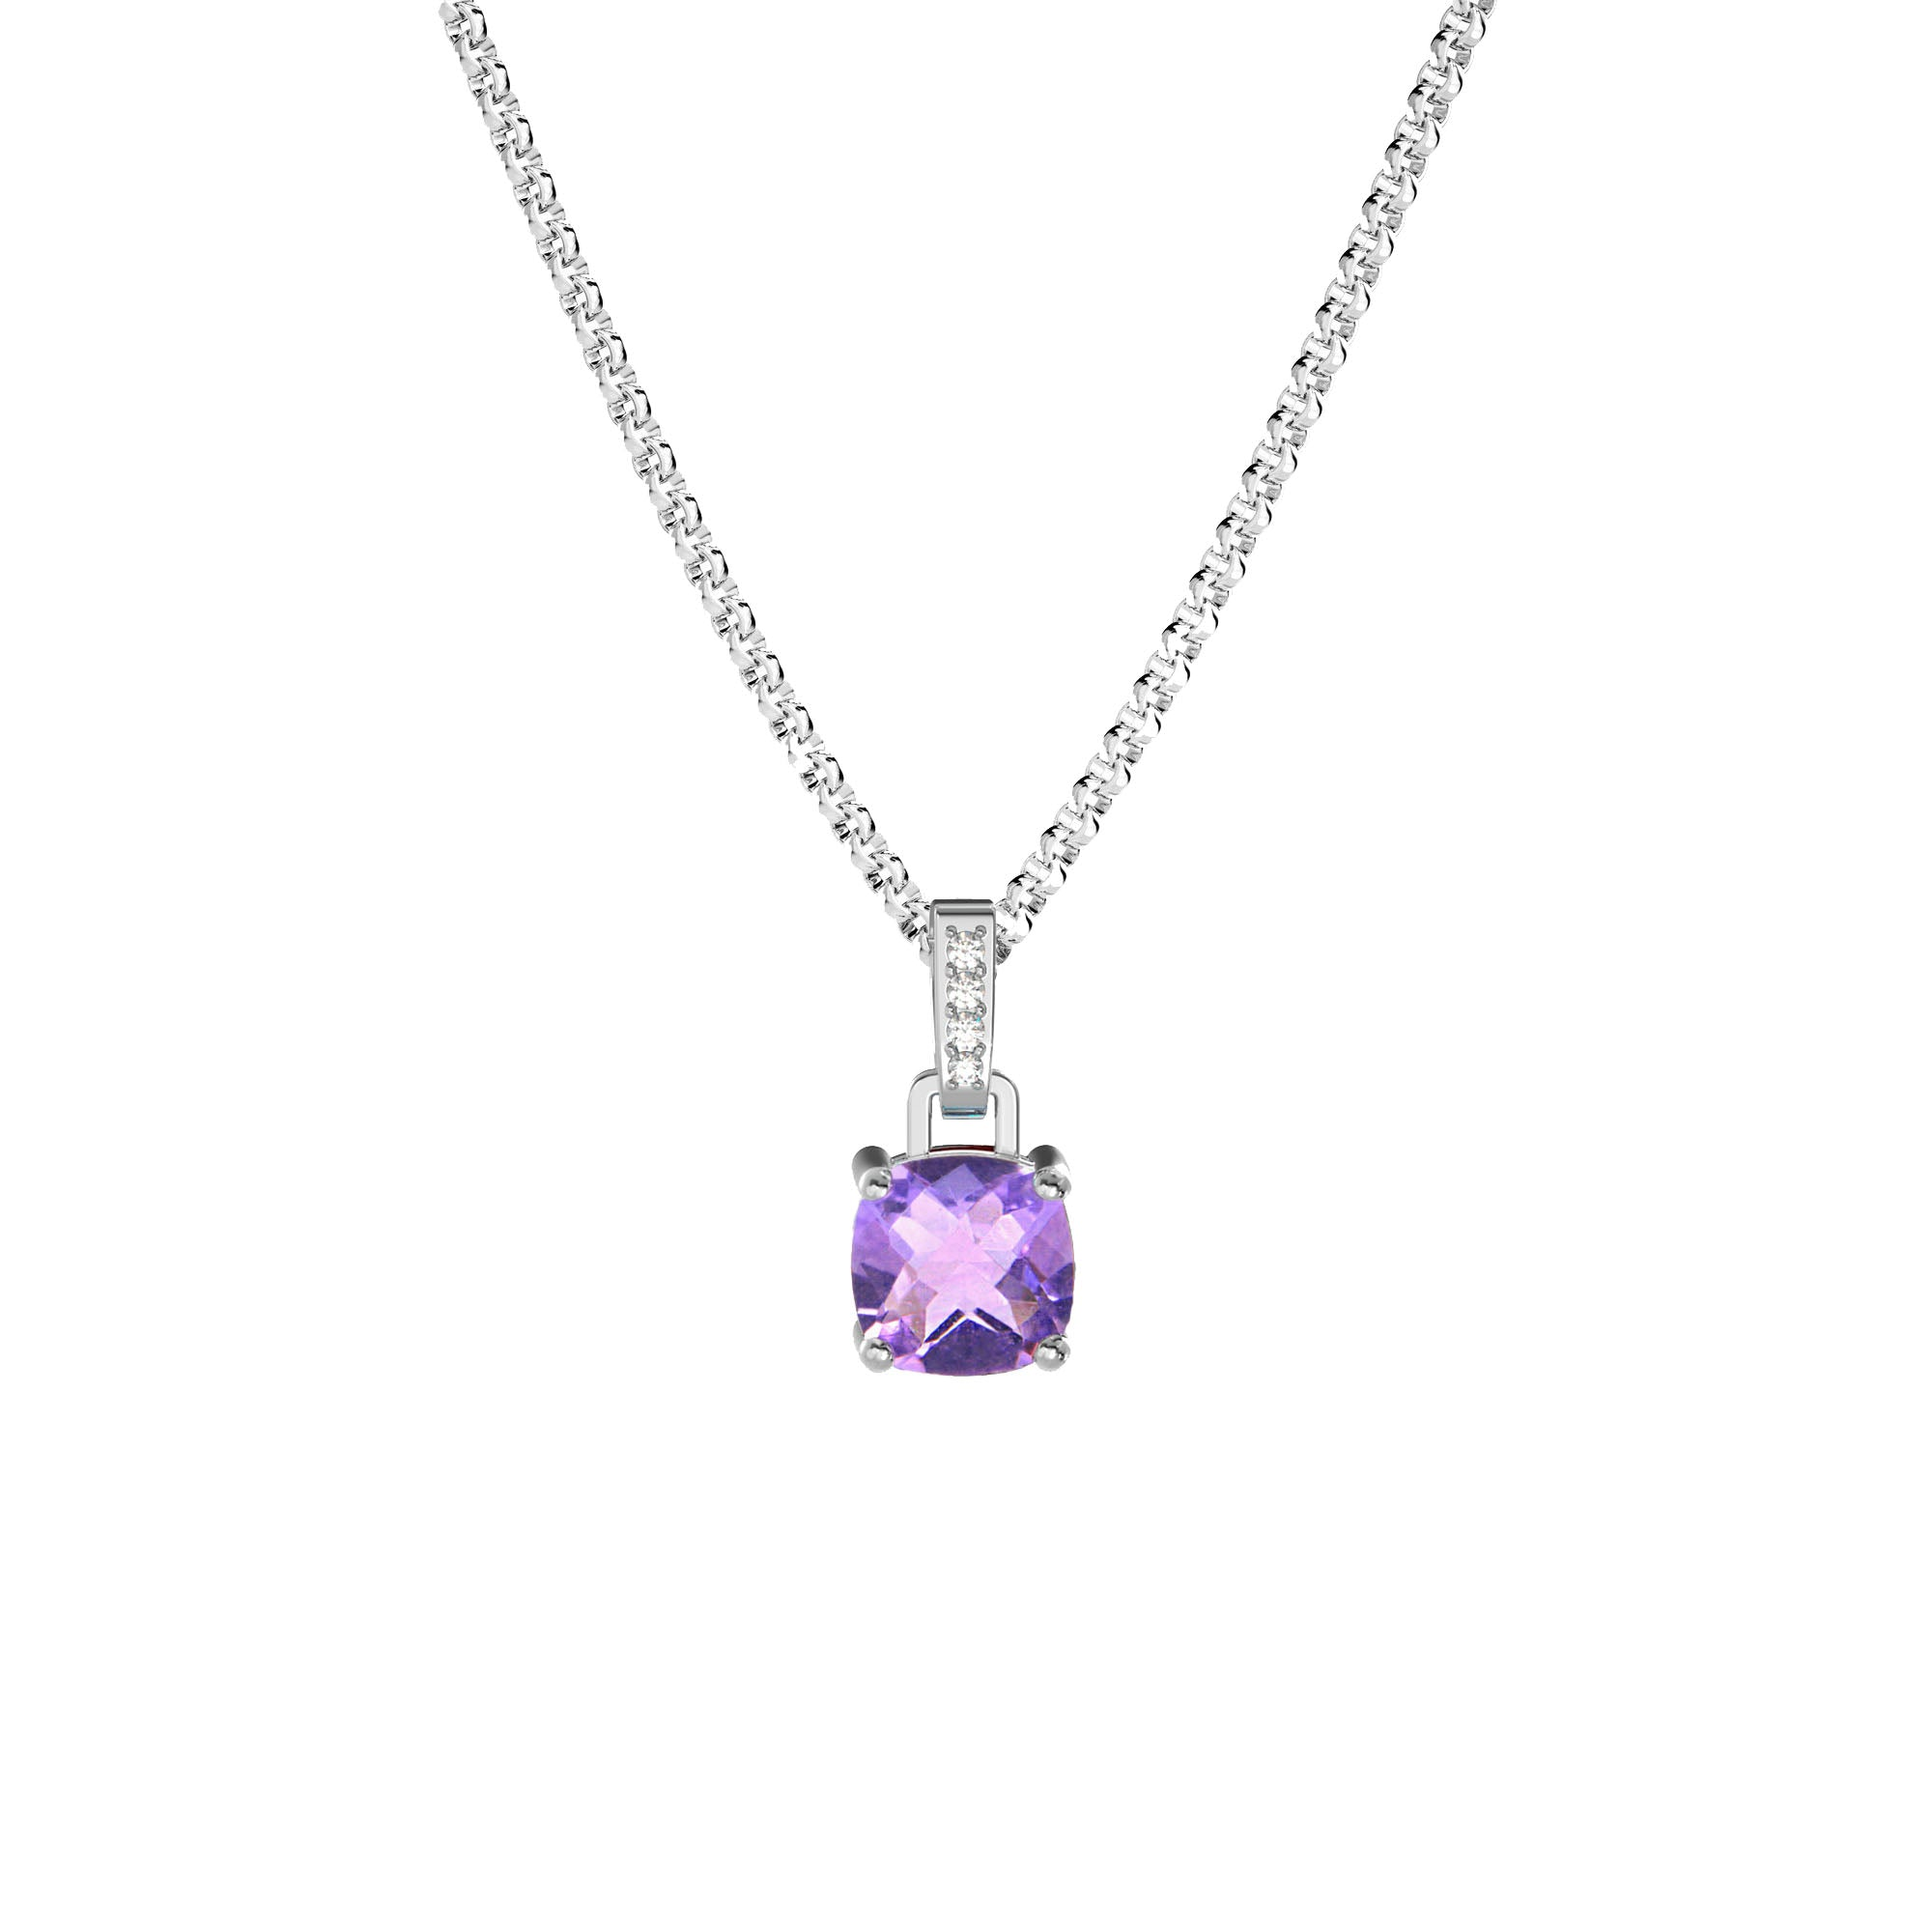 925 Silver Classic Series Necklace - Felicia (Amethyst)